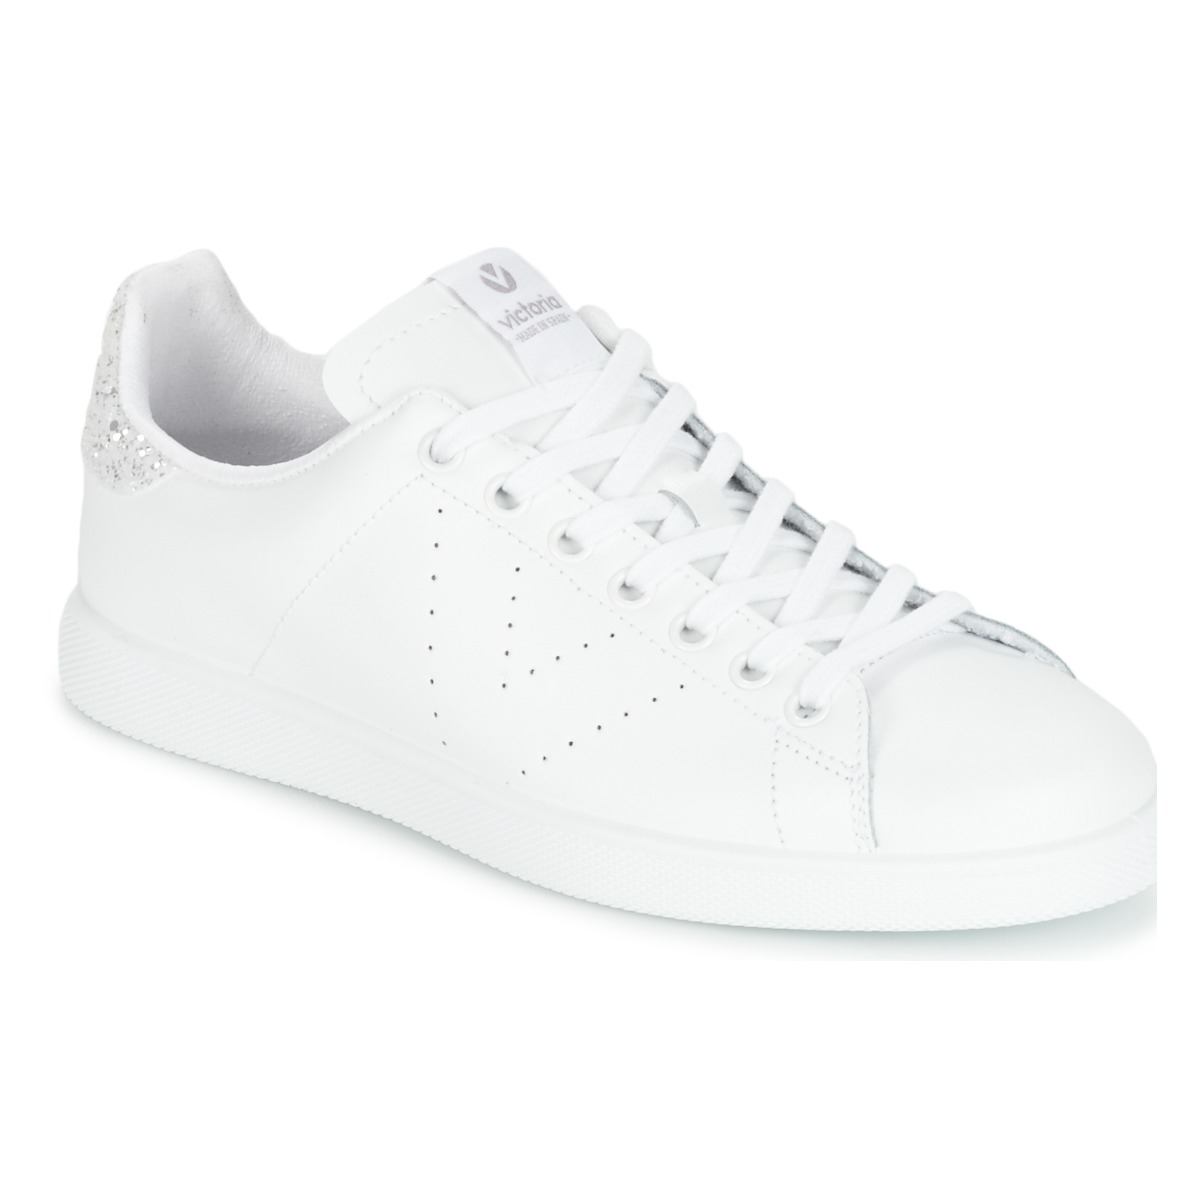 Femme Femme Chaussures Chaussures Femme Soldes Basket Soldes Chaussures Basket Soldes Basket Soldes yvmN8n0wO